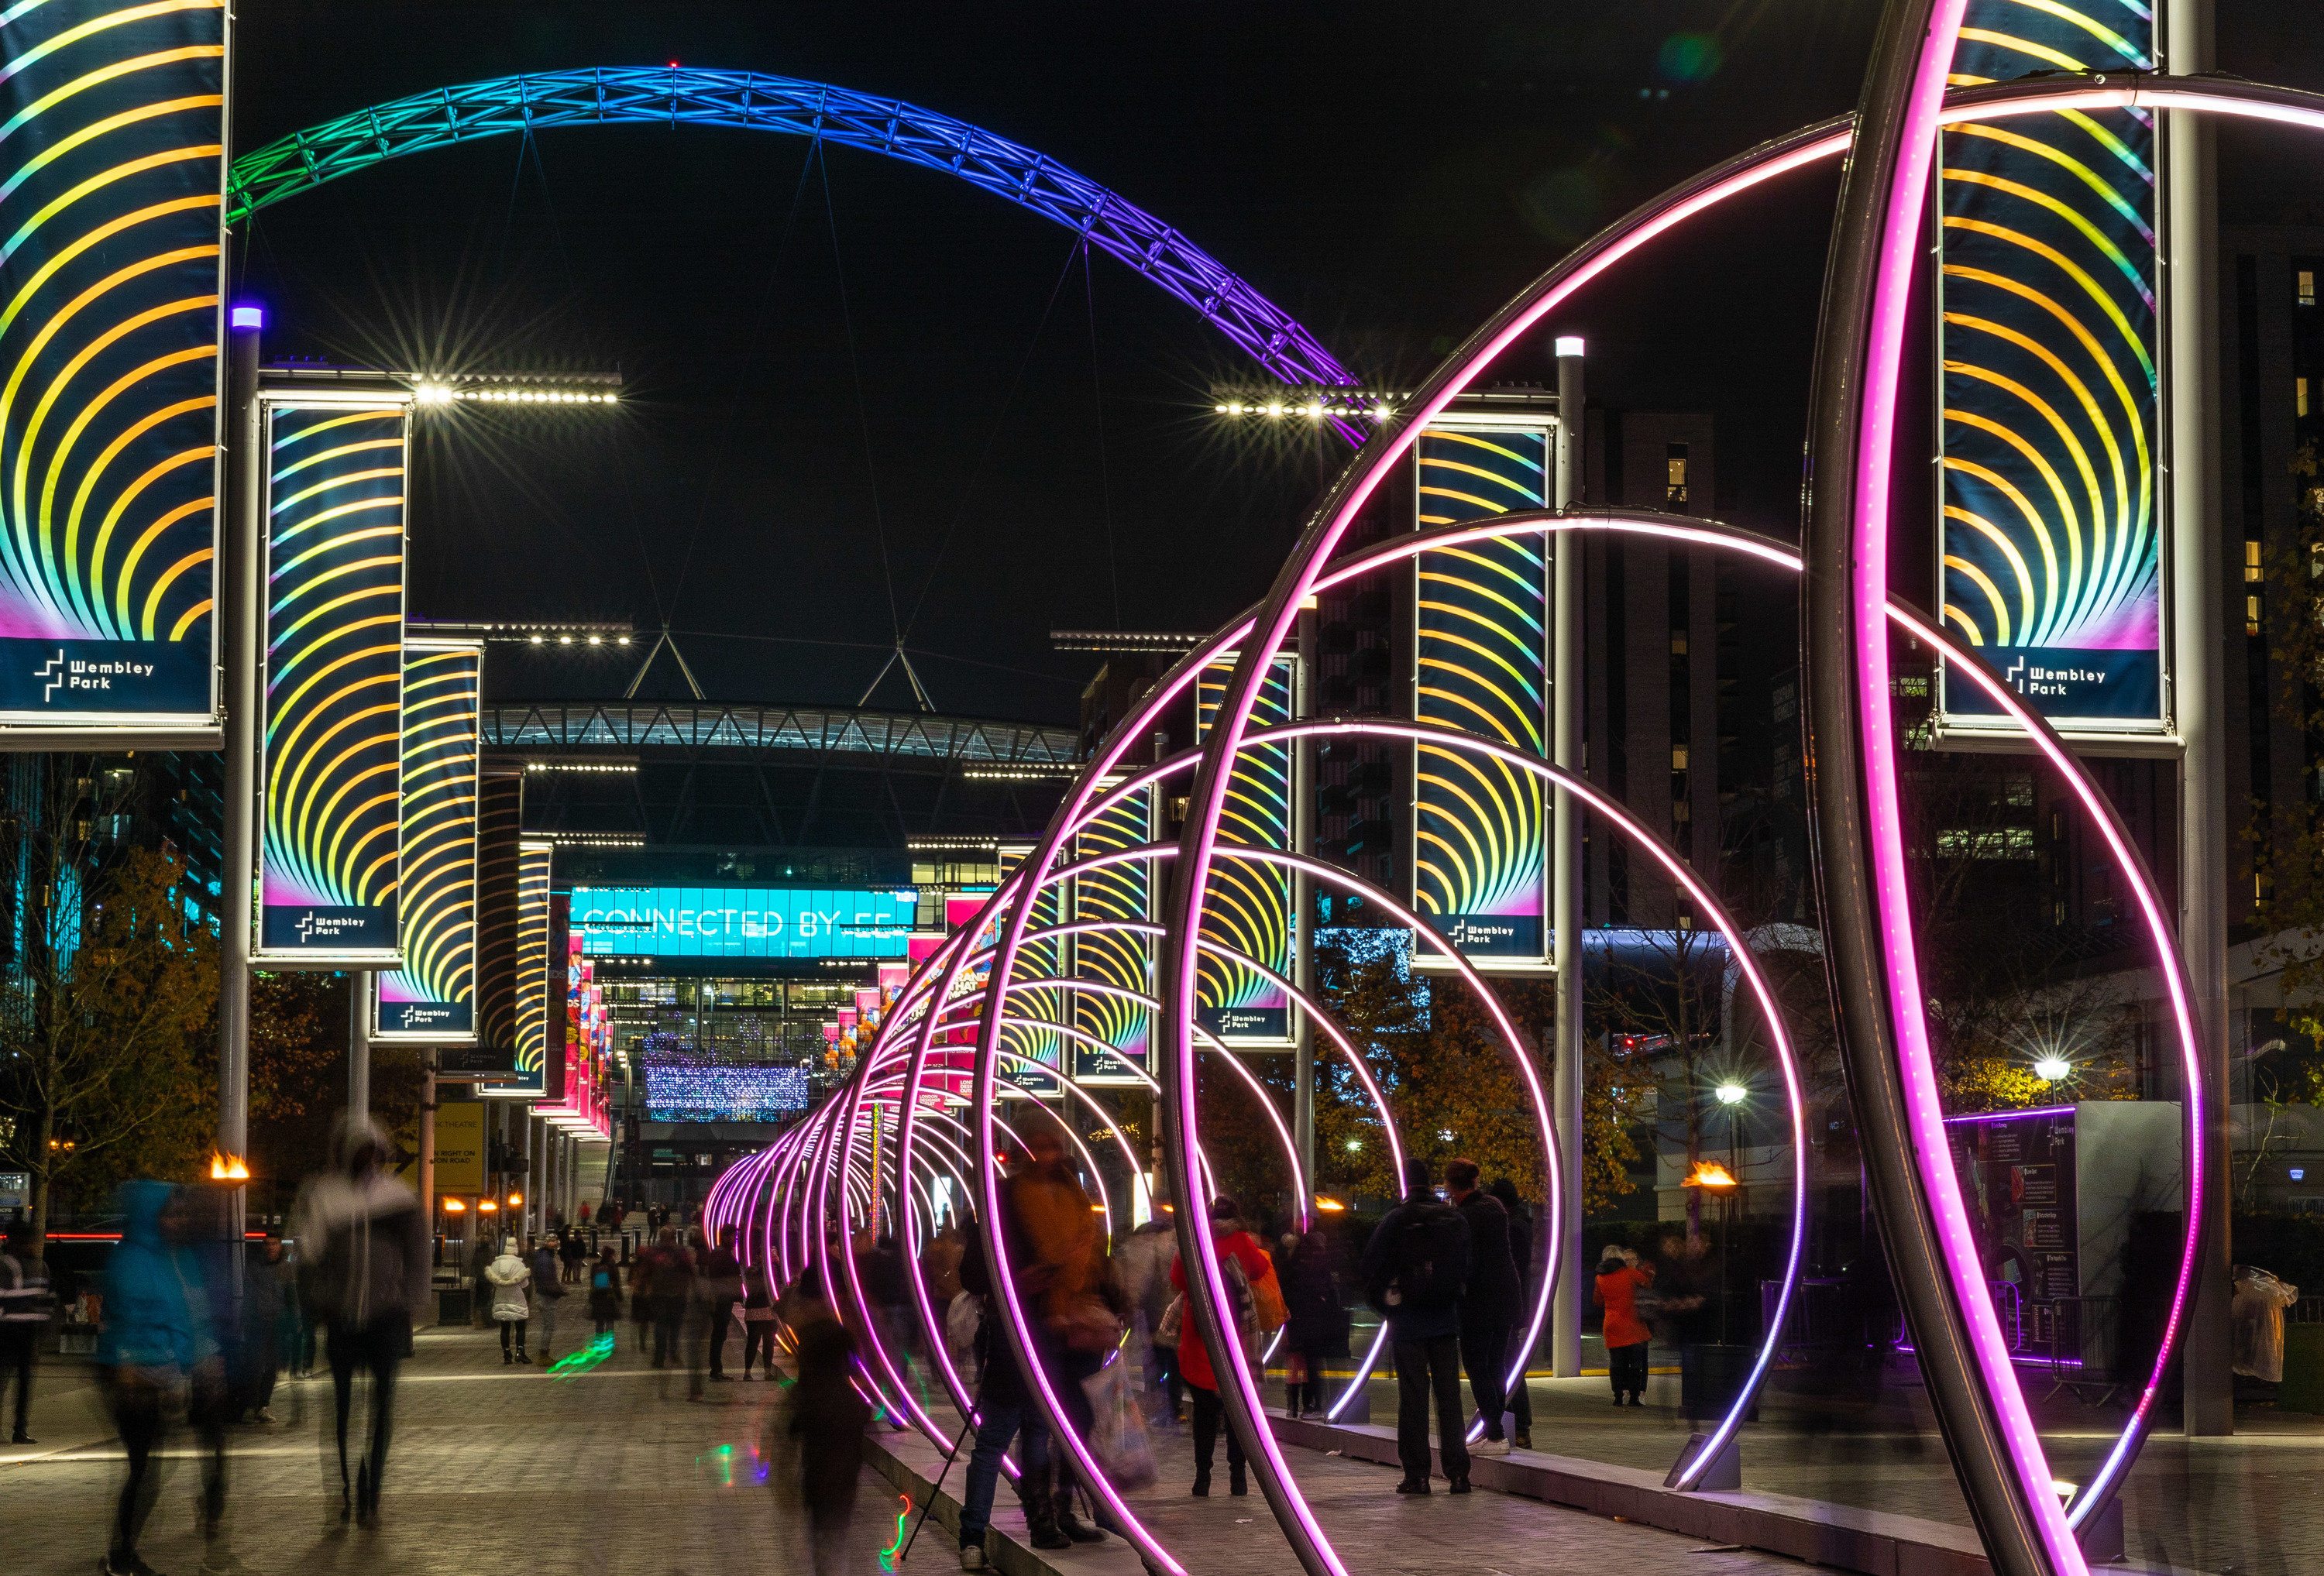 free things to do in london next week